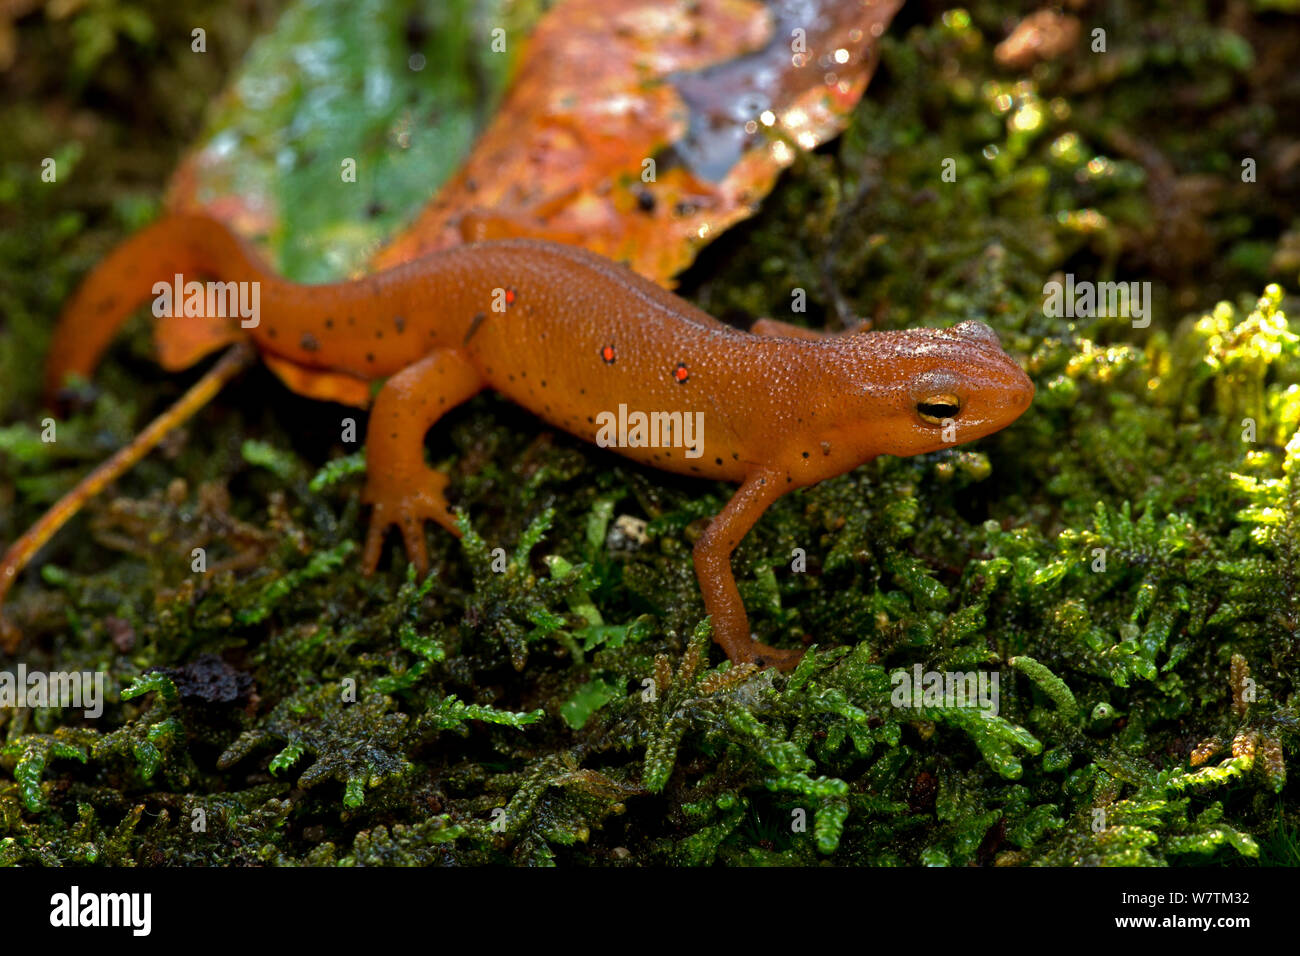 Red-spotted newt (Notophthalmus viridescens) red eft or terrestrial phase, New York, USA, July. Stock Photo